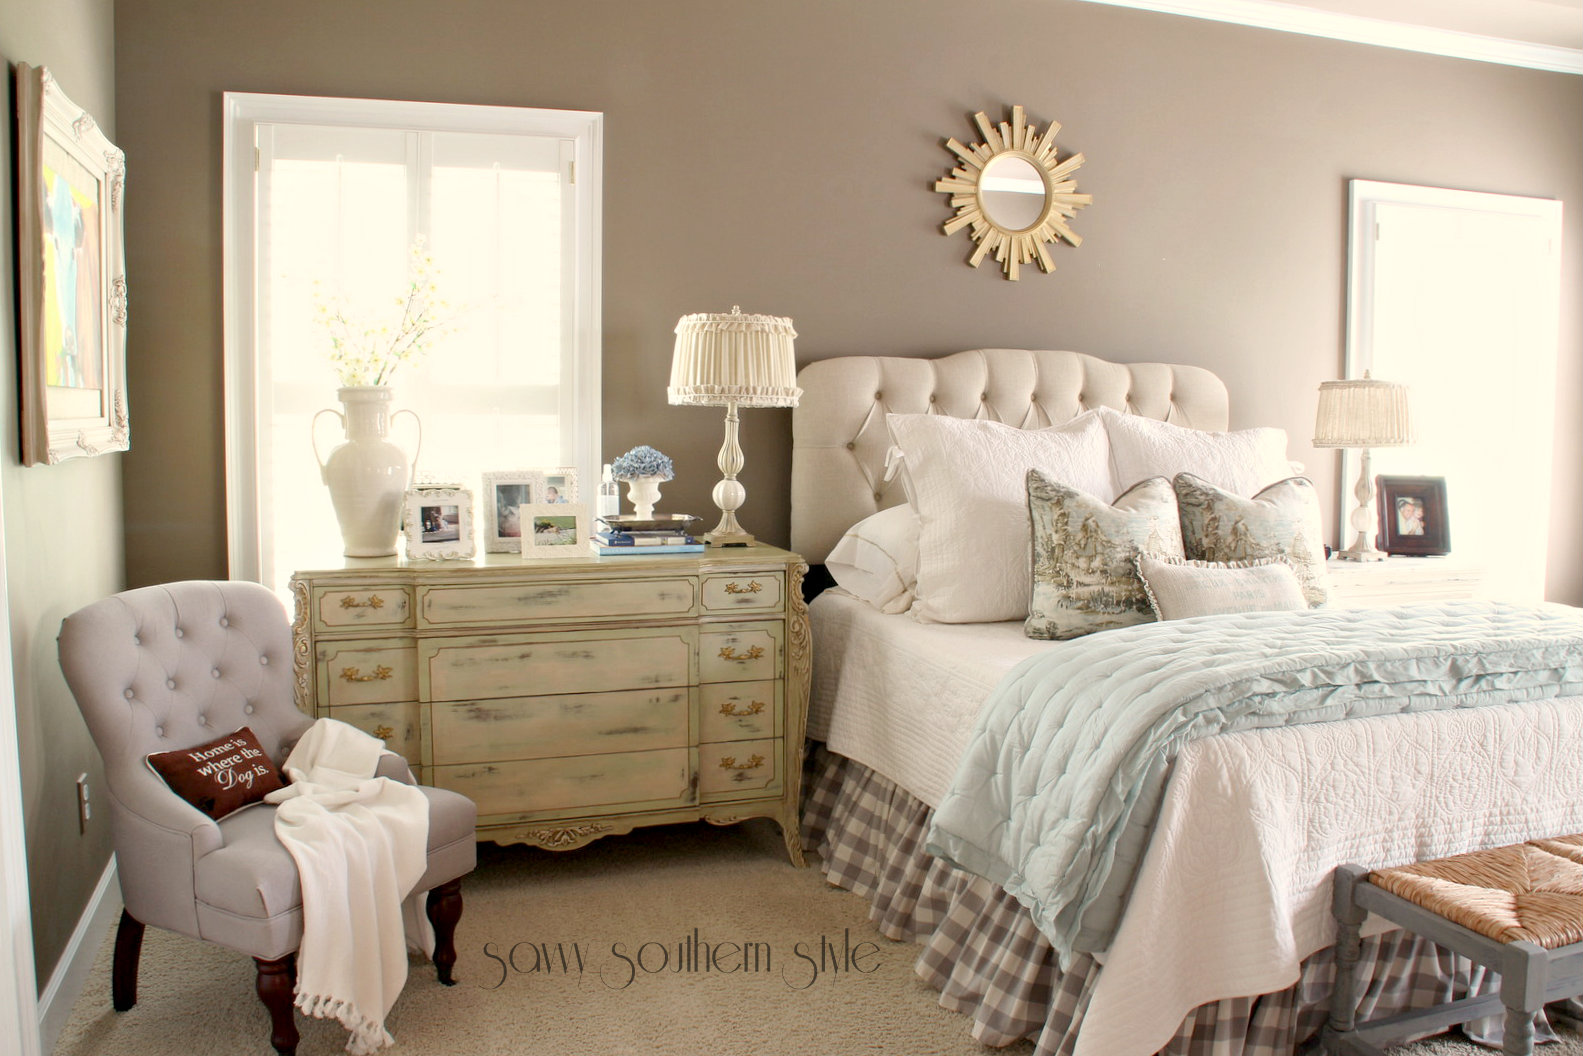 Savvy Southern Style Musical Chairs In The Master Bedroom